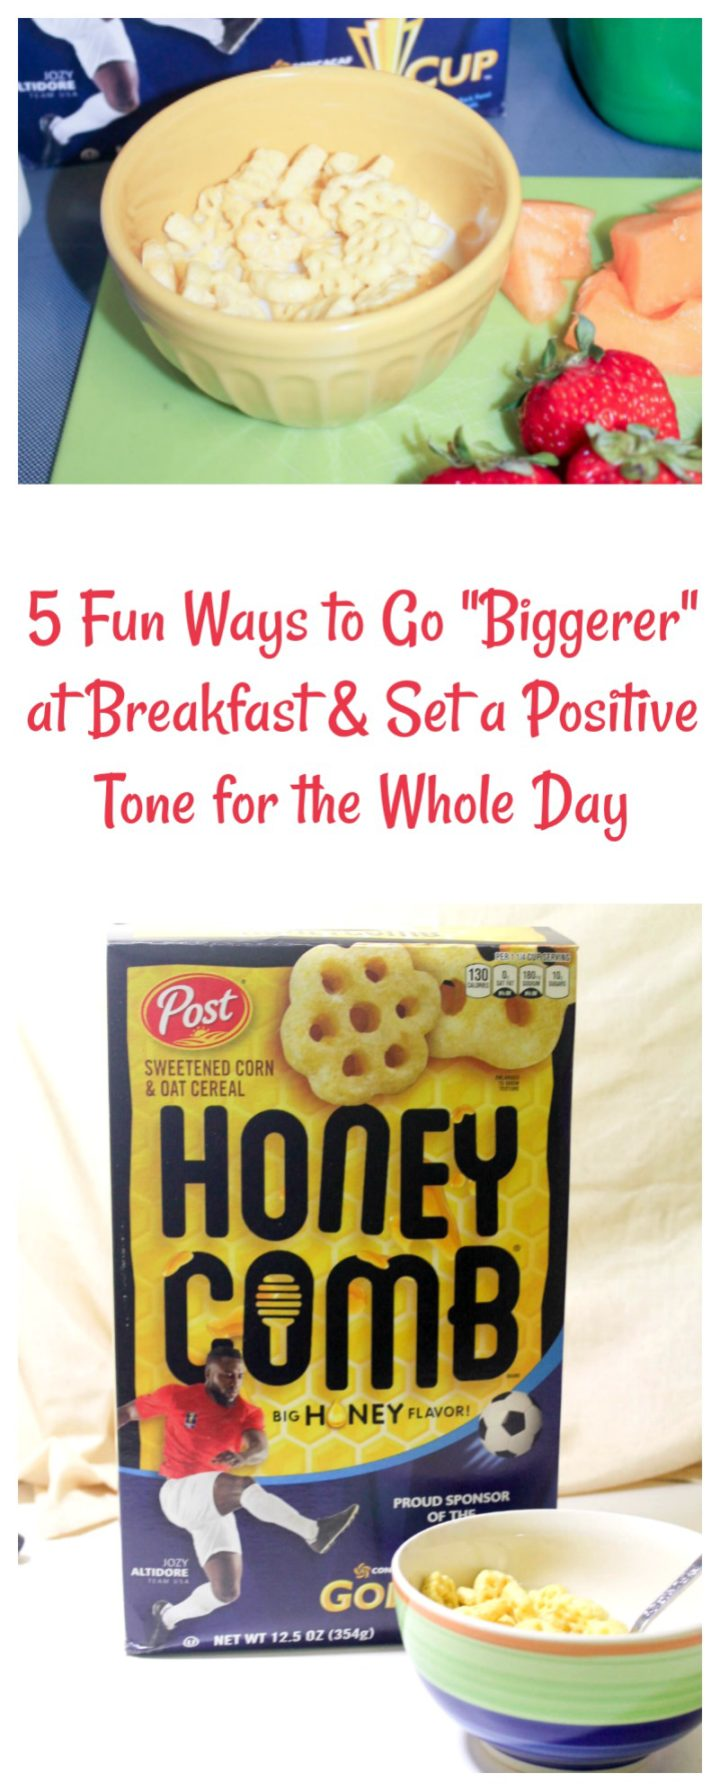 5 Fun Ways to Go Biggerer at Breakfast & Set a Positive Tone for the Whole Day